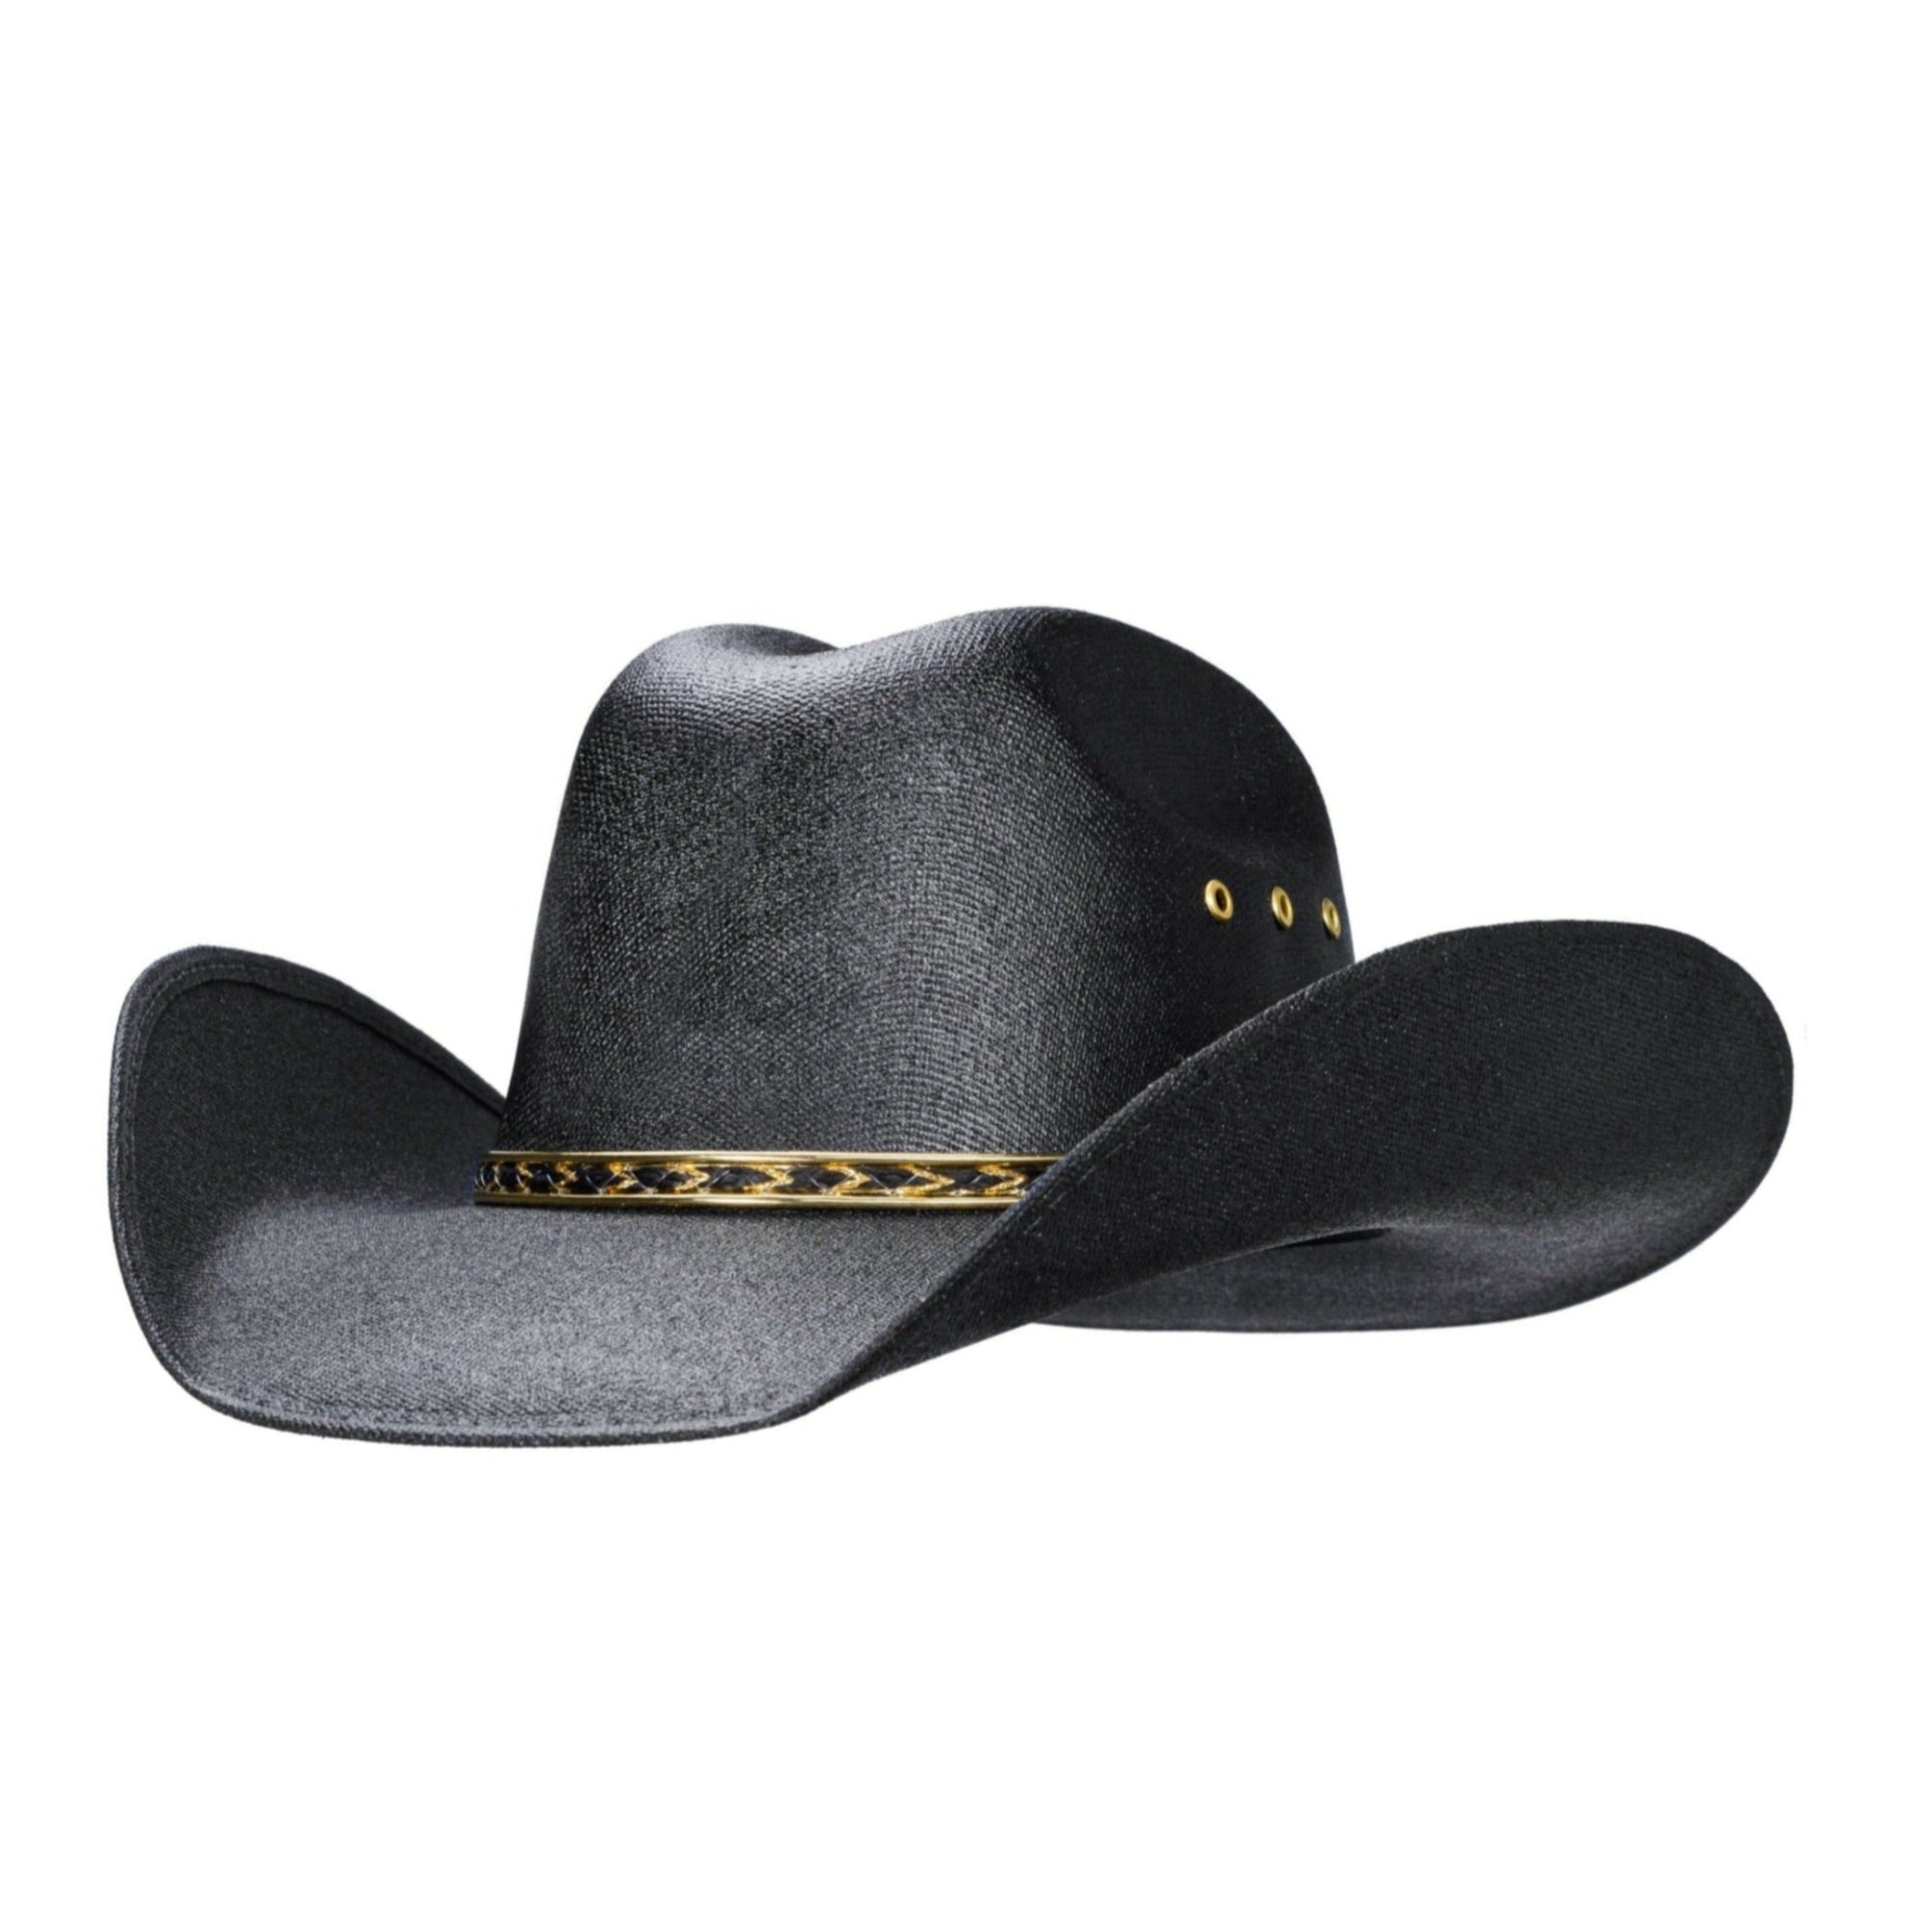 Traditional western style cowboy hat, child sized, cleans with Windex